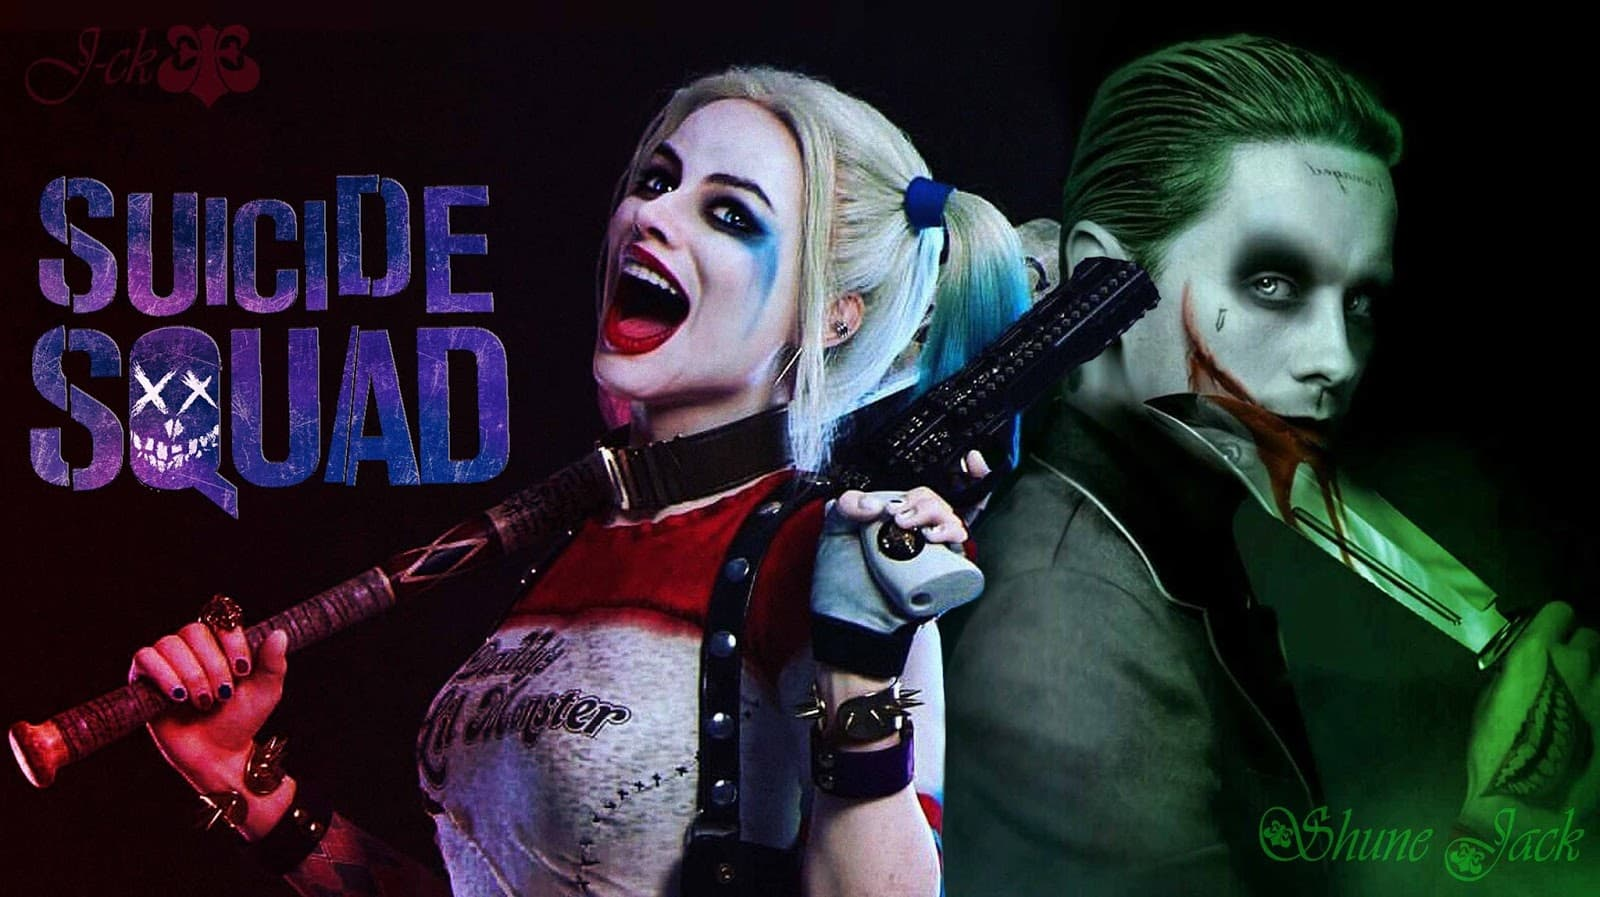 Margot Robbie Harley Quinn Wallpapers On Wallpaperdog